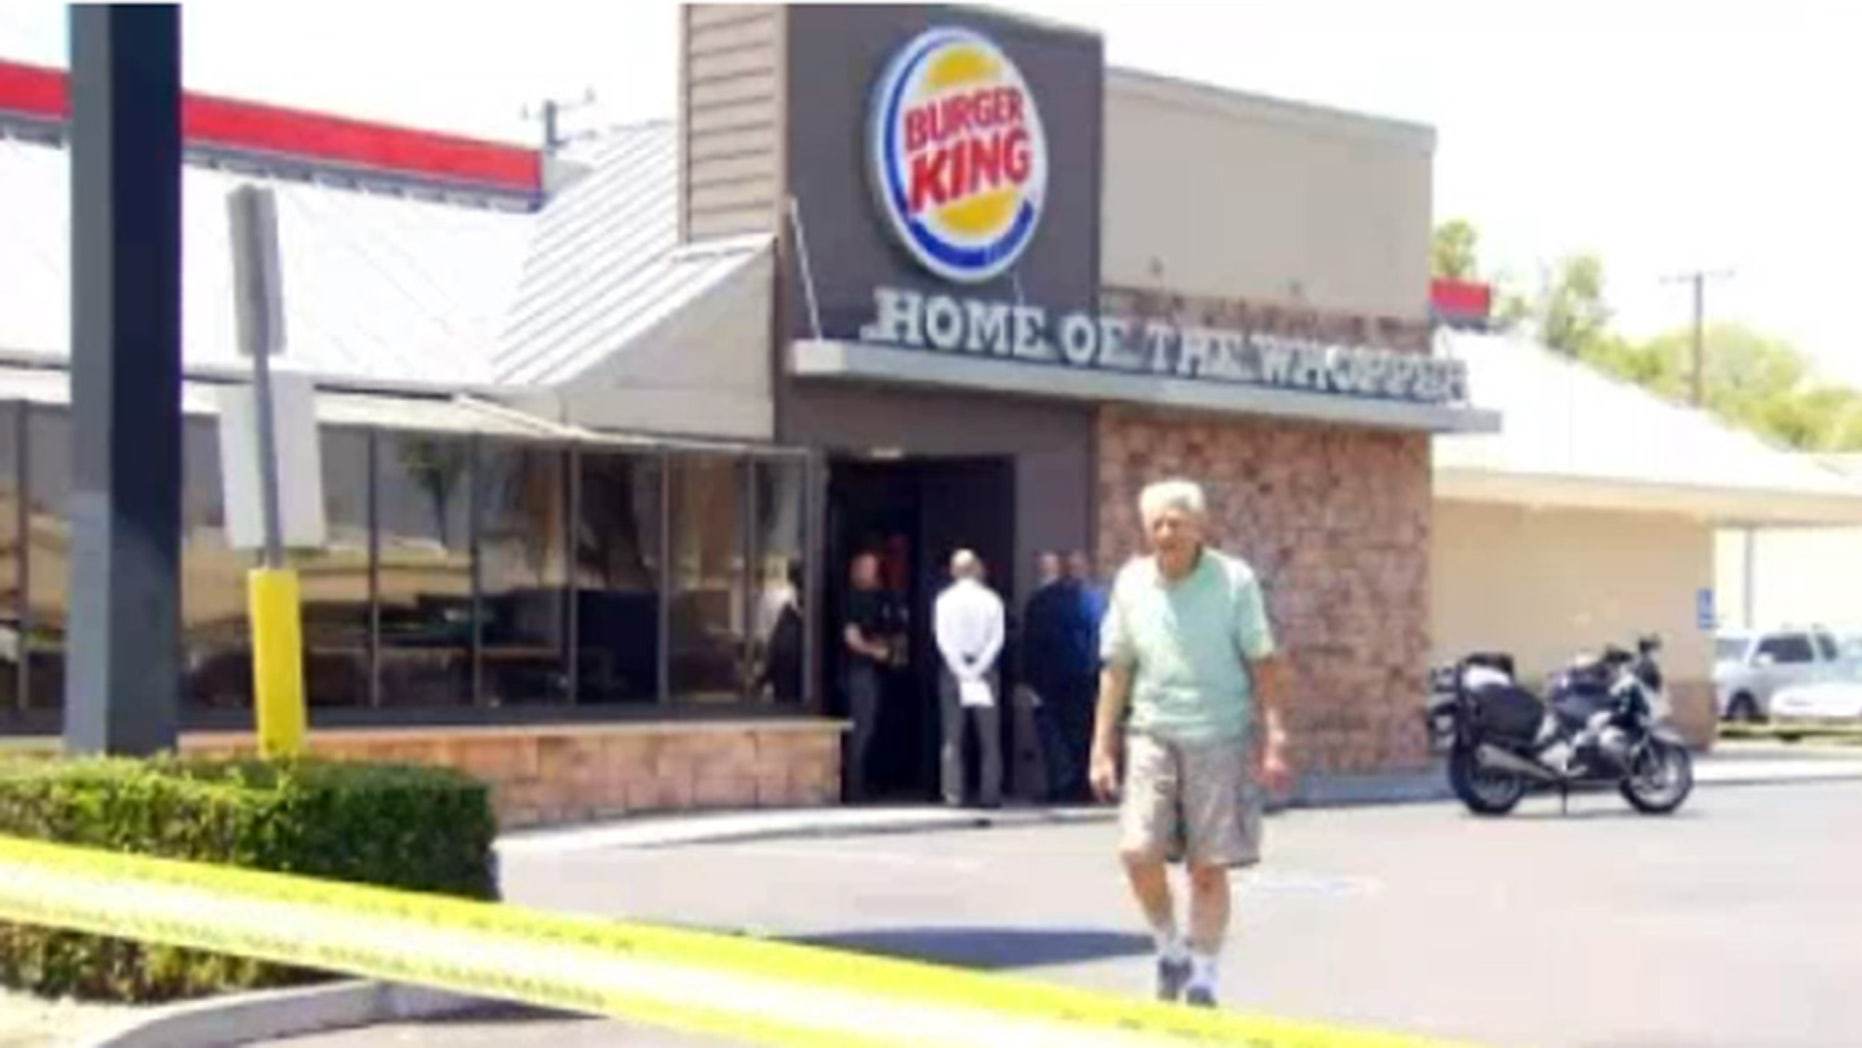 A man in his 70s (not pictured) was brutally attacked in a California Burger King Tuesday morning.